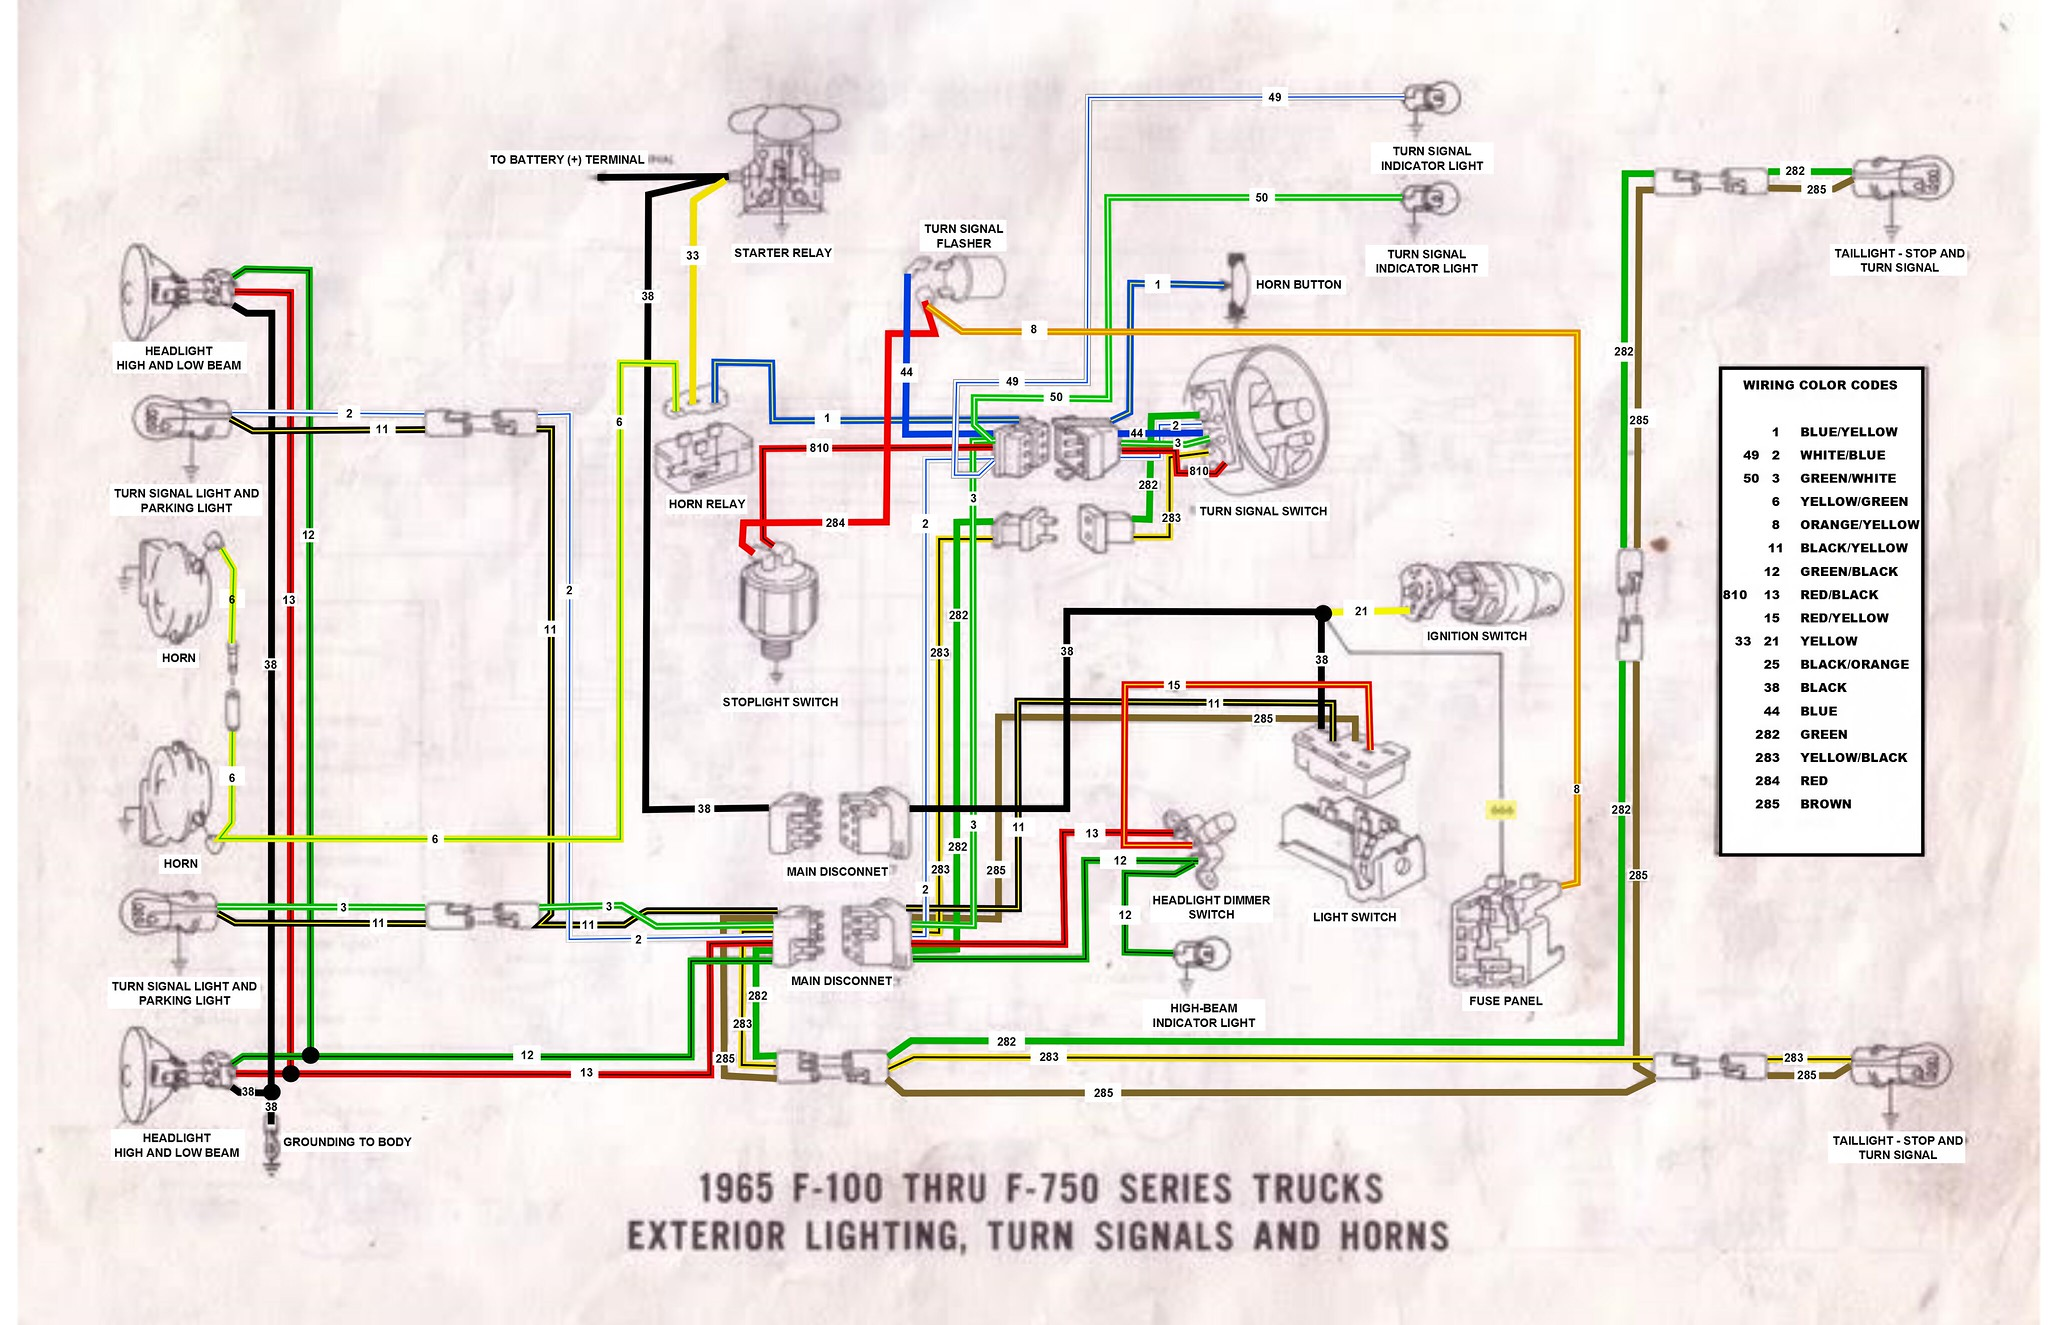 2007 F750 Wiring Diagram Circuit Schematic Ford F650 Archive Of Automotive U2022 2000 Diagrams